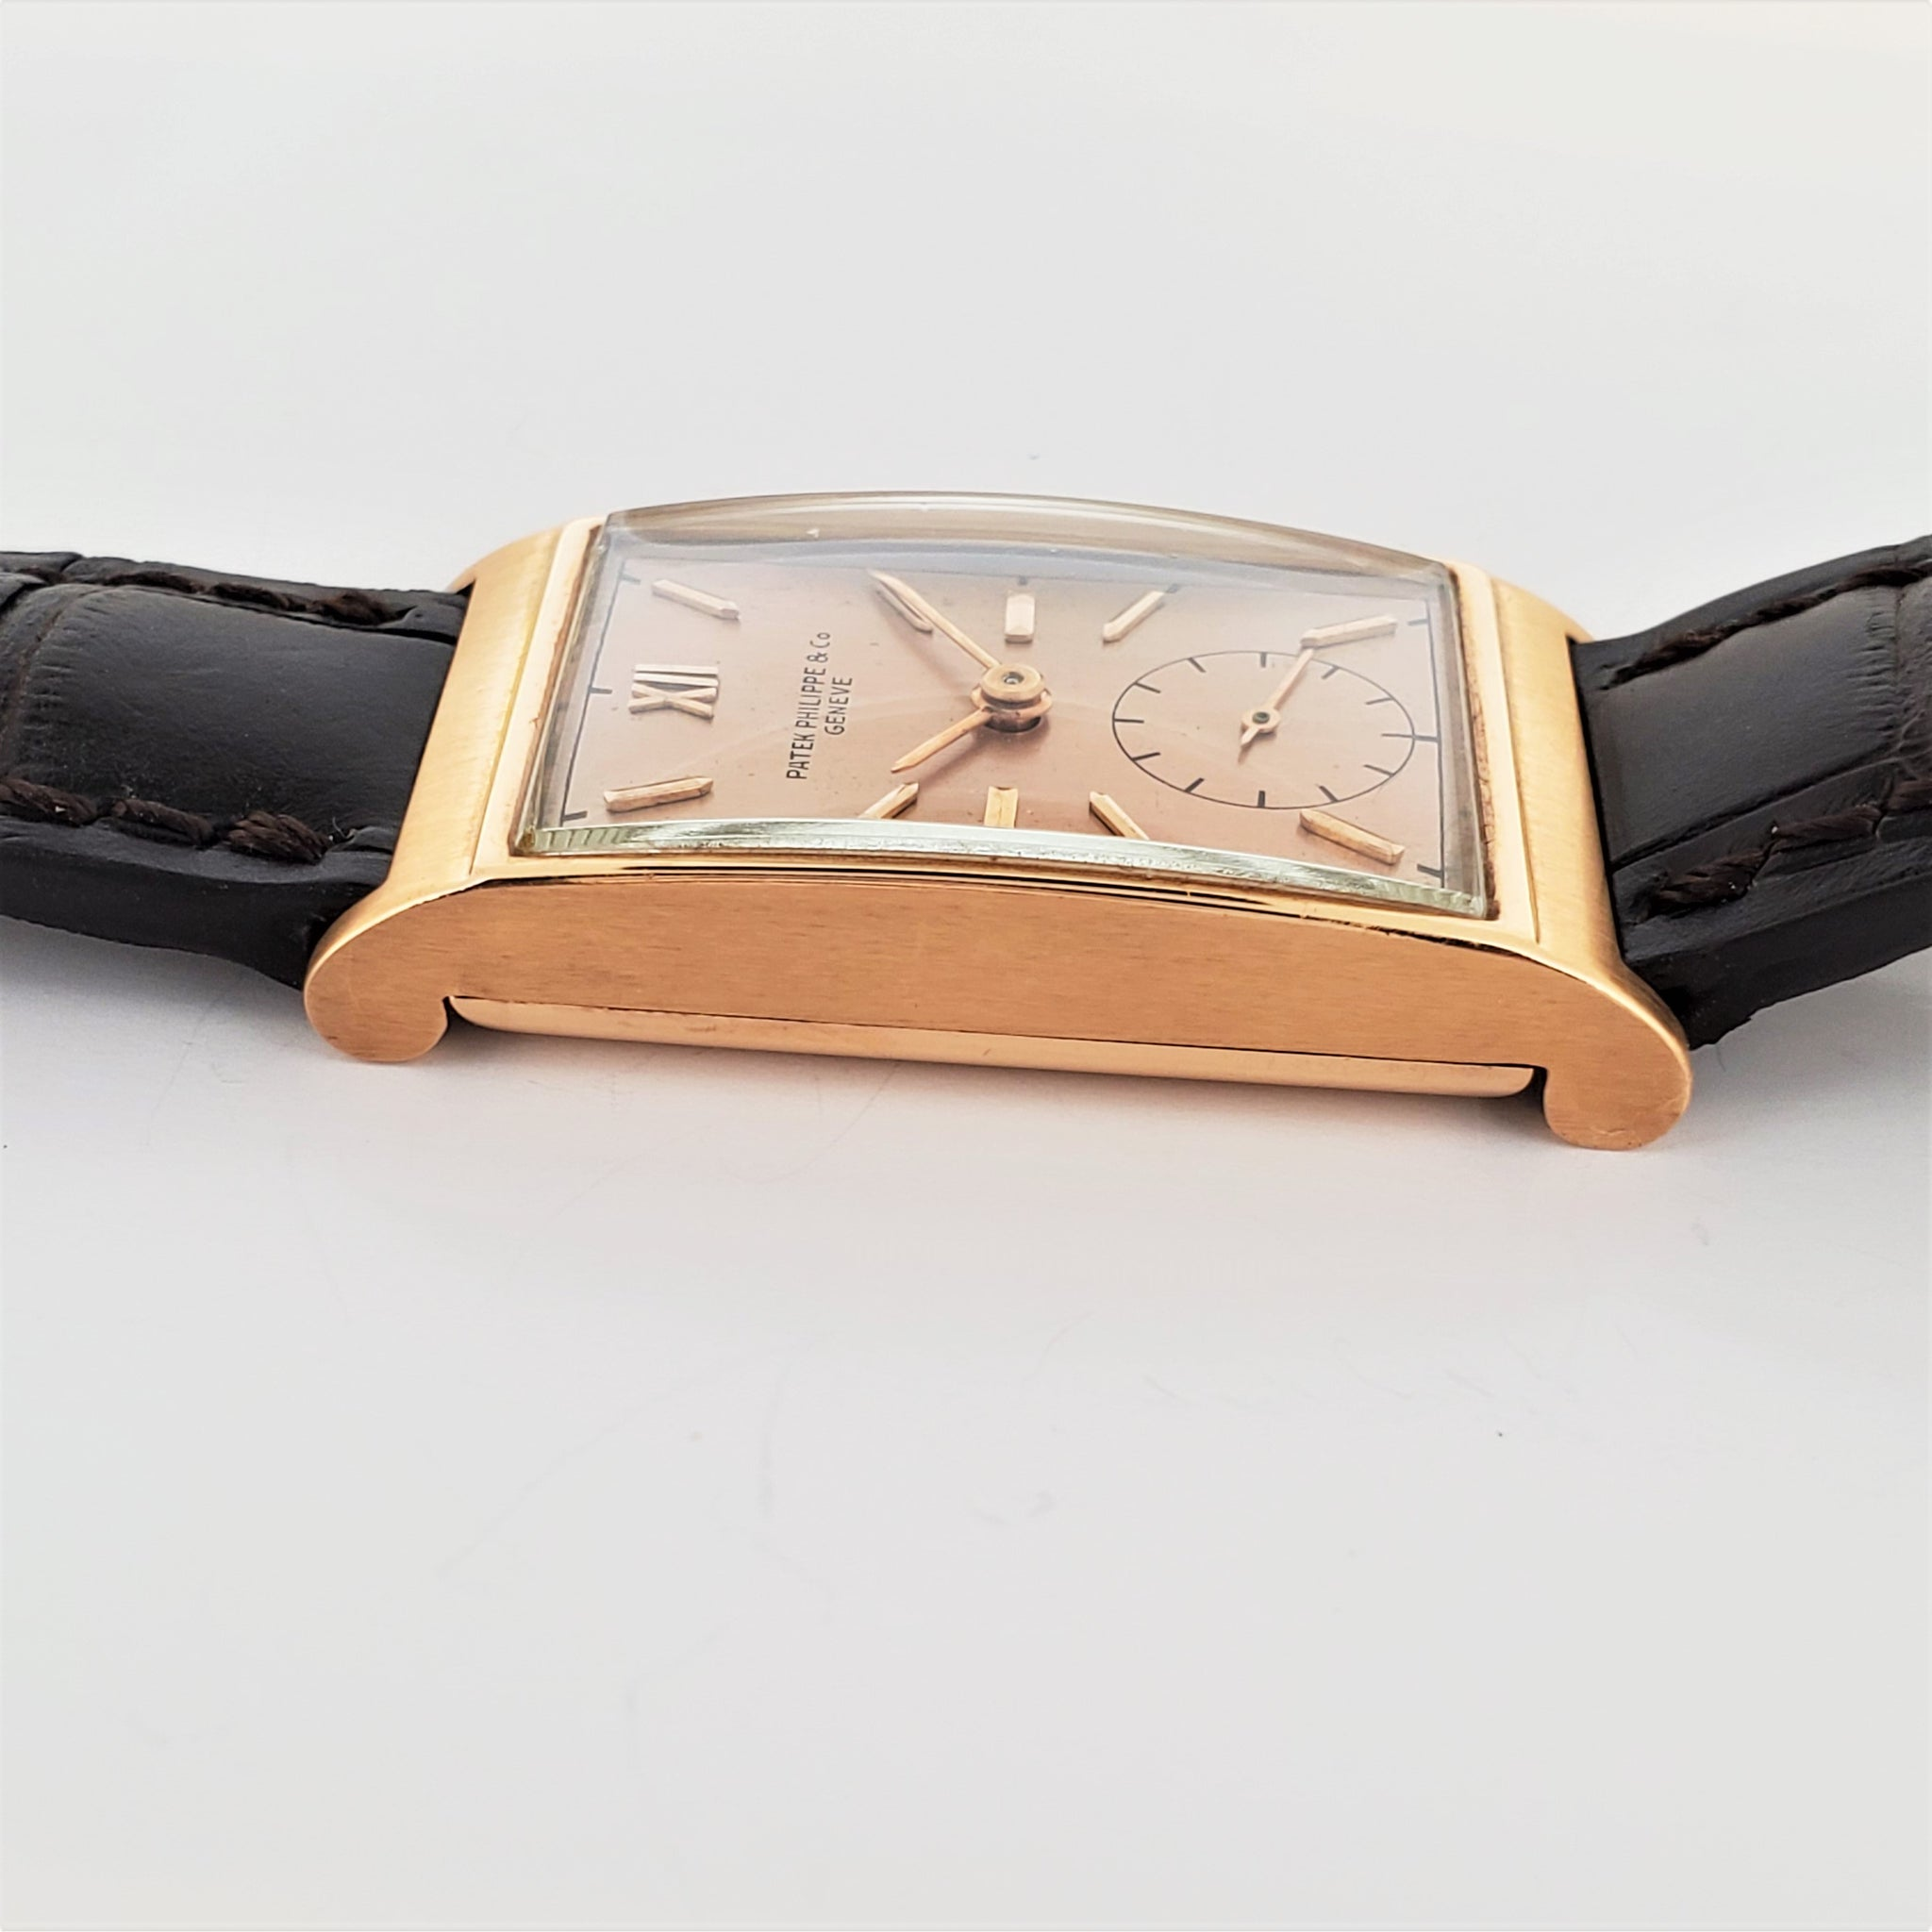 Patek Philippe 1442R Rectangular Watch